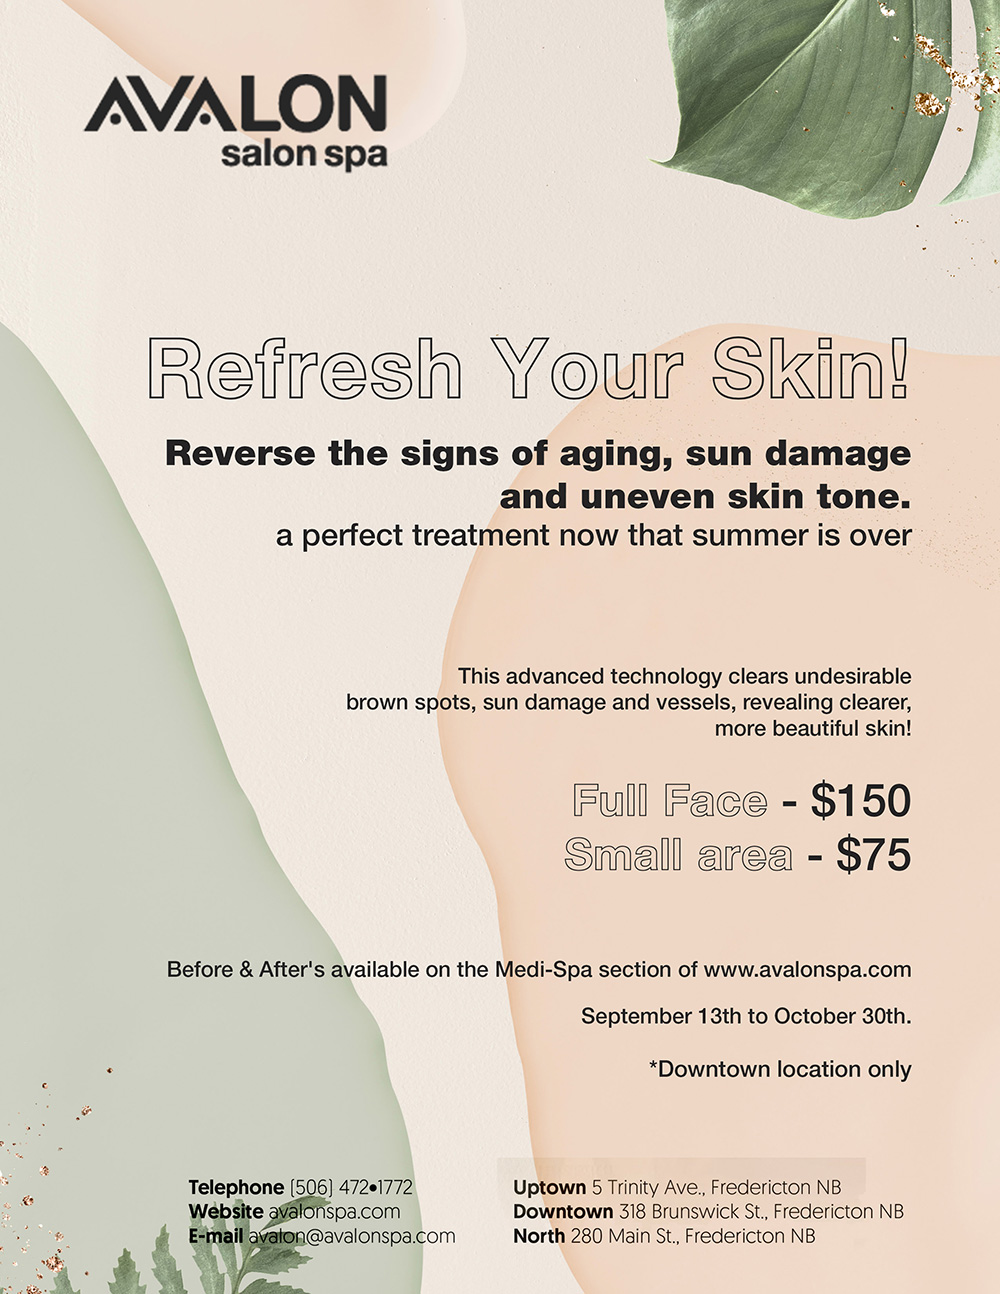 refresh.your-skin_St.,-Fredericton